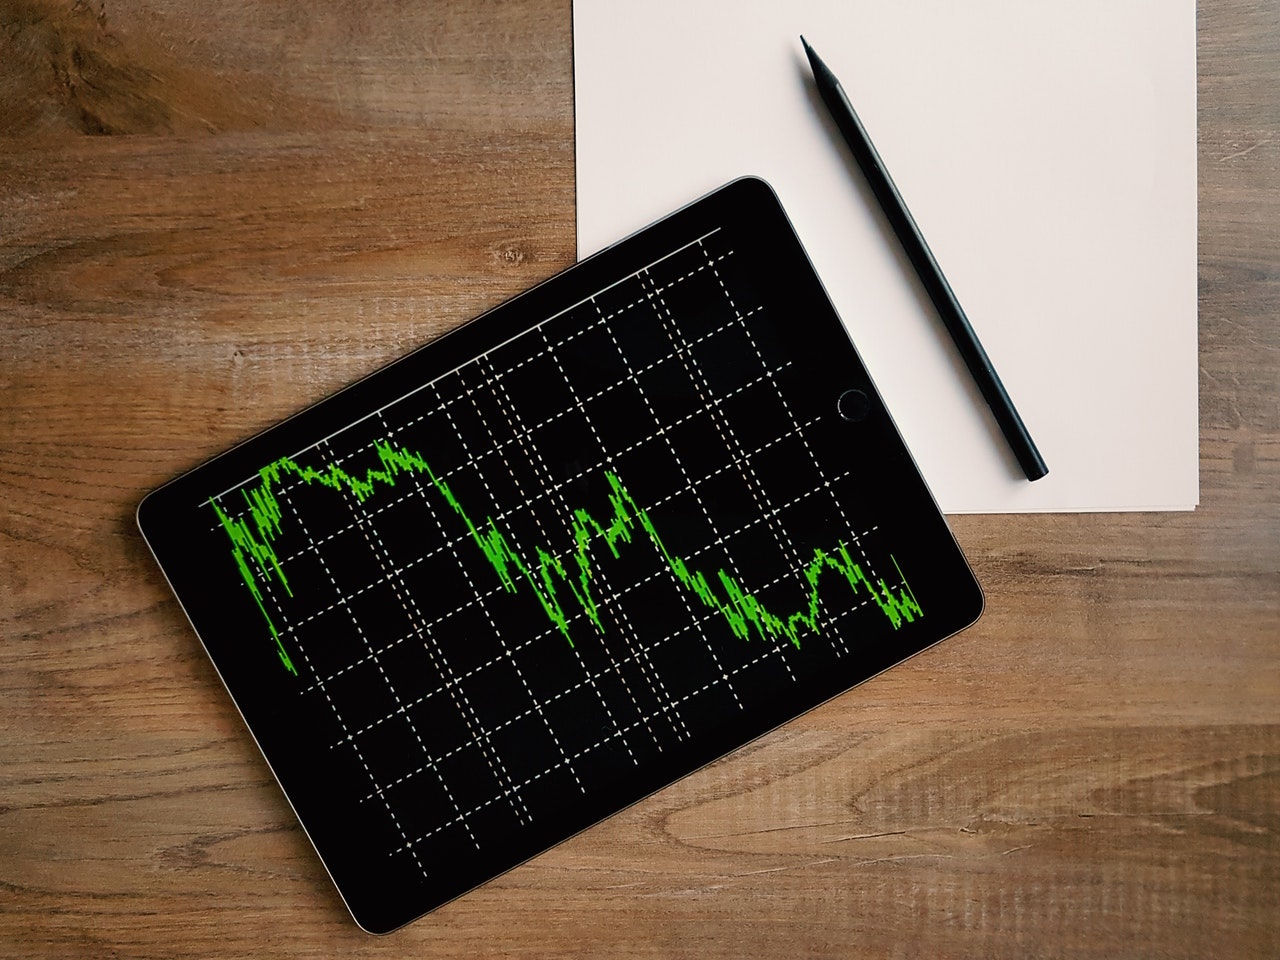 how I lost $100,000 on a hot stock tip